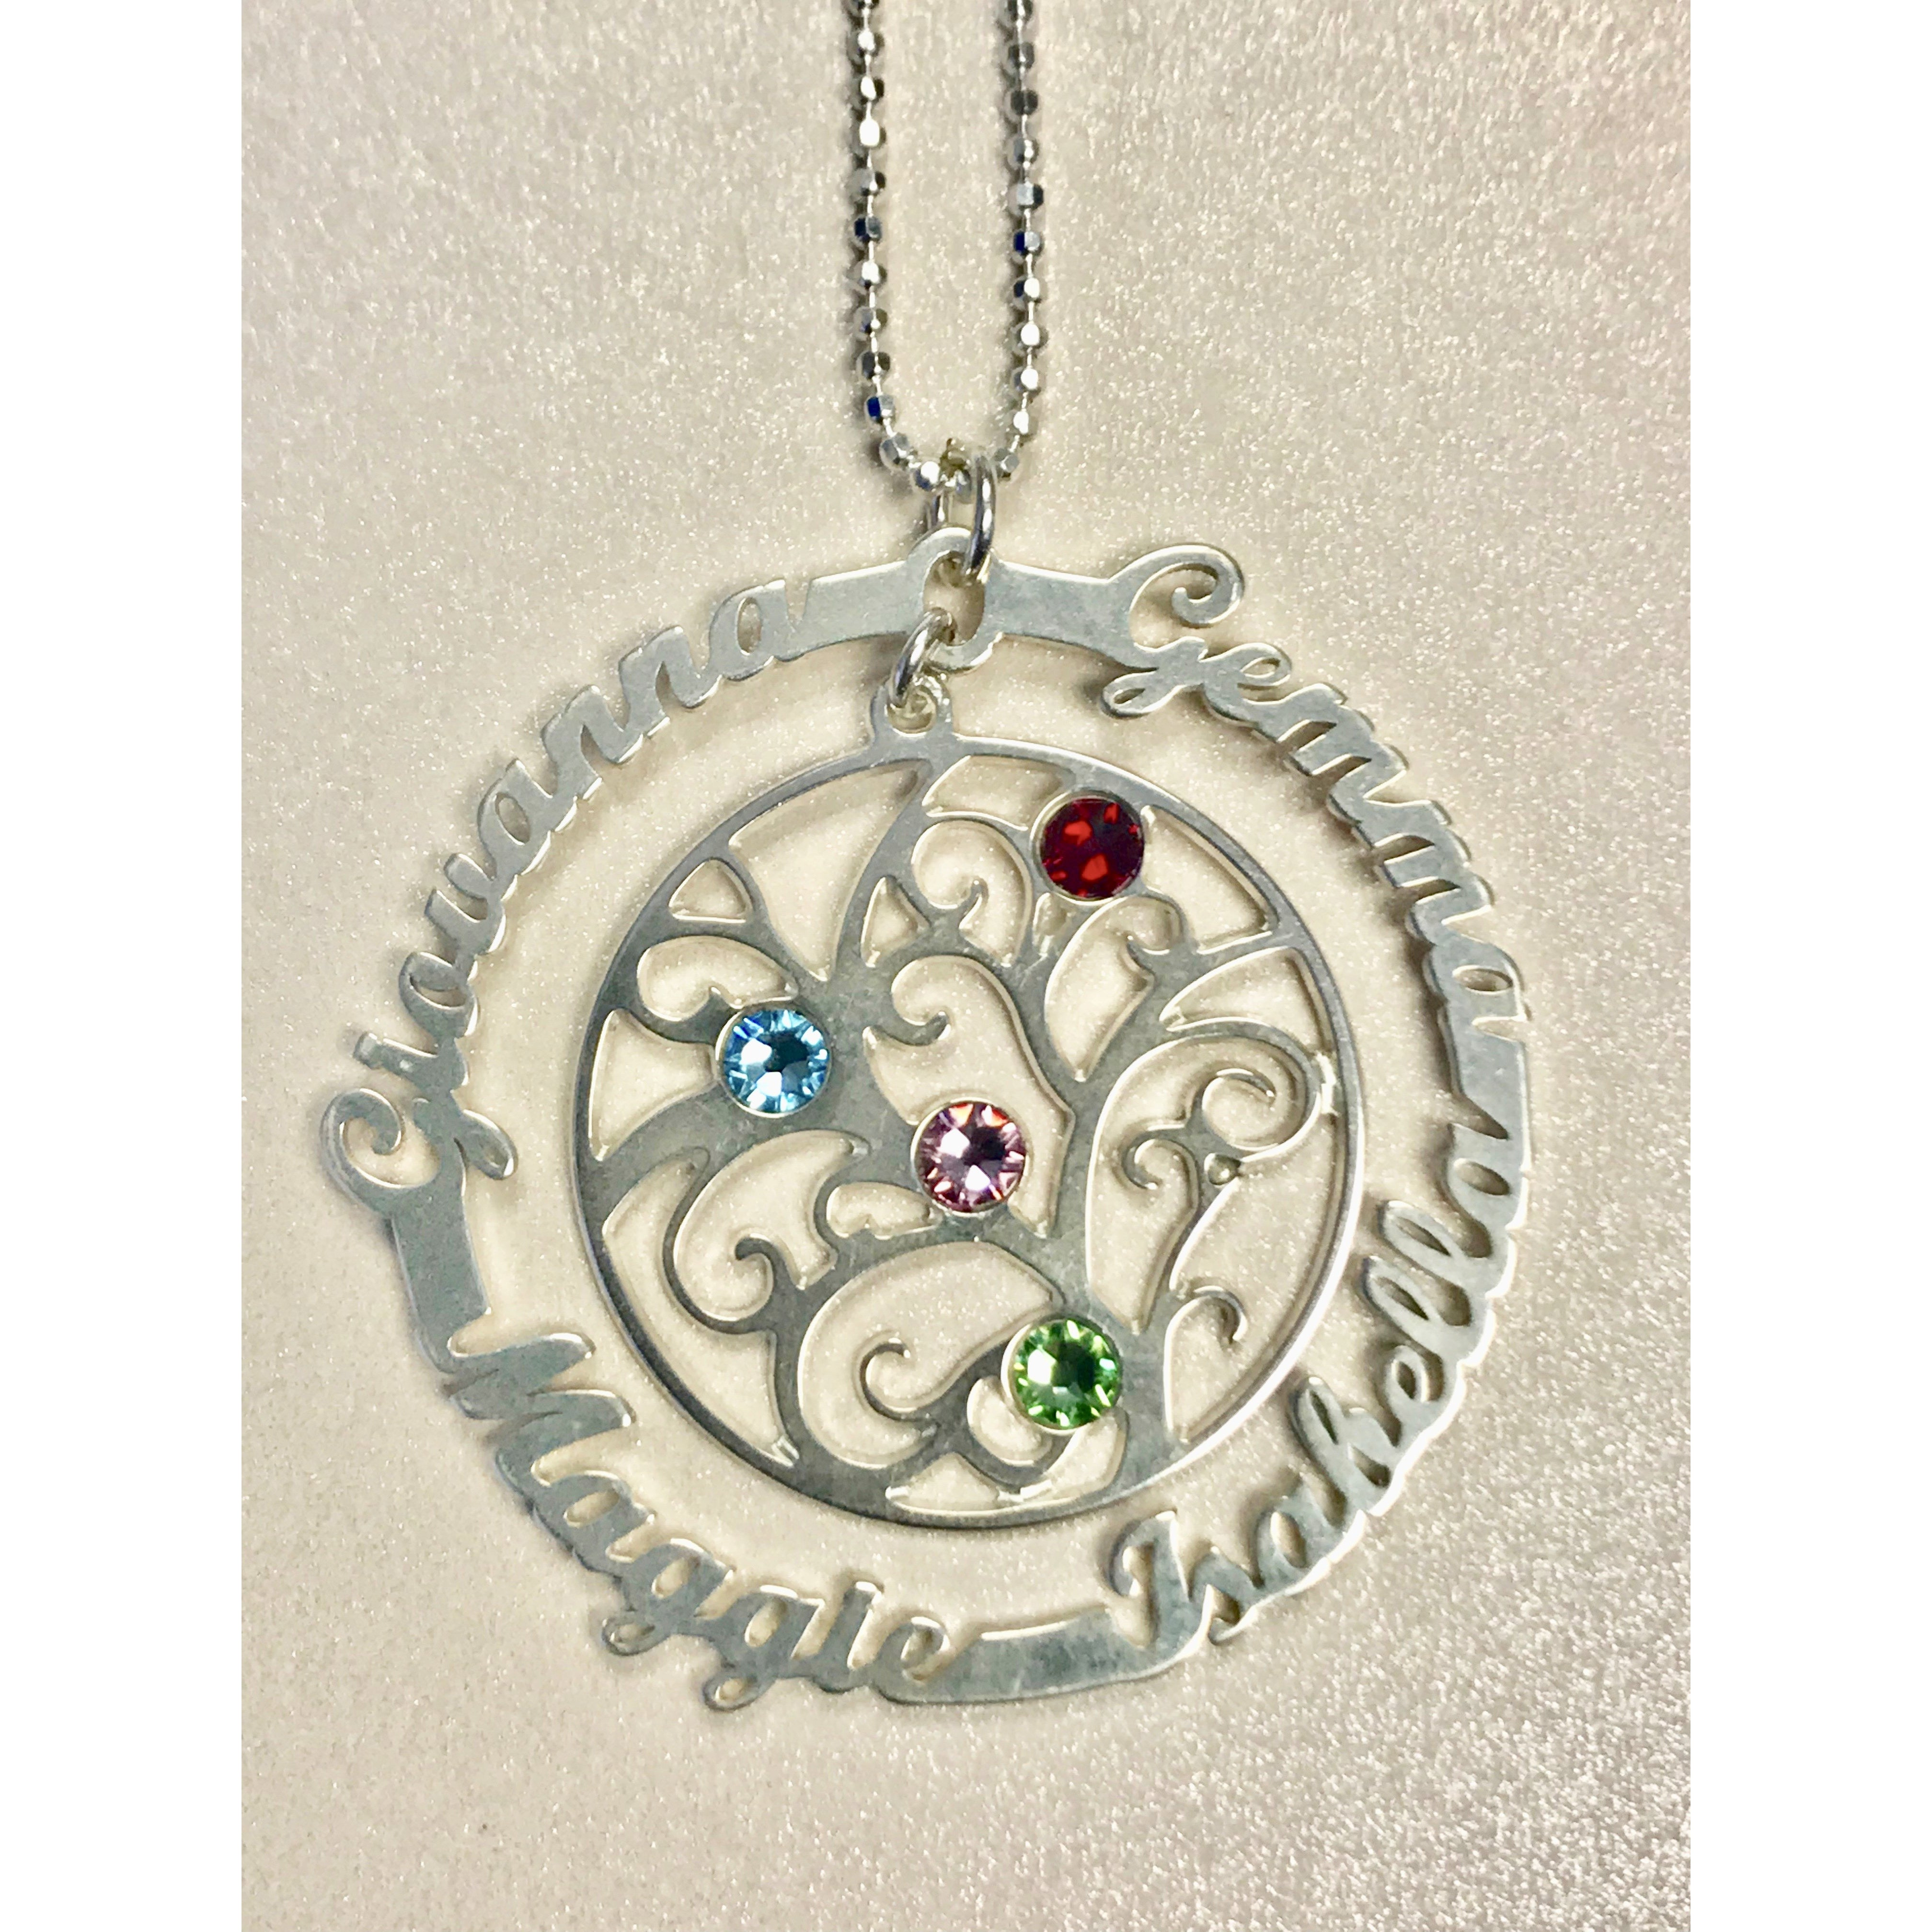 Personalized .925 Sterling Silver Family Tree Necklace - 3 Names